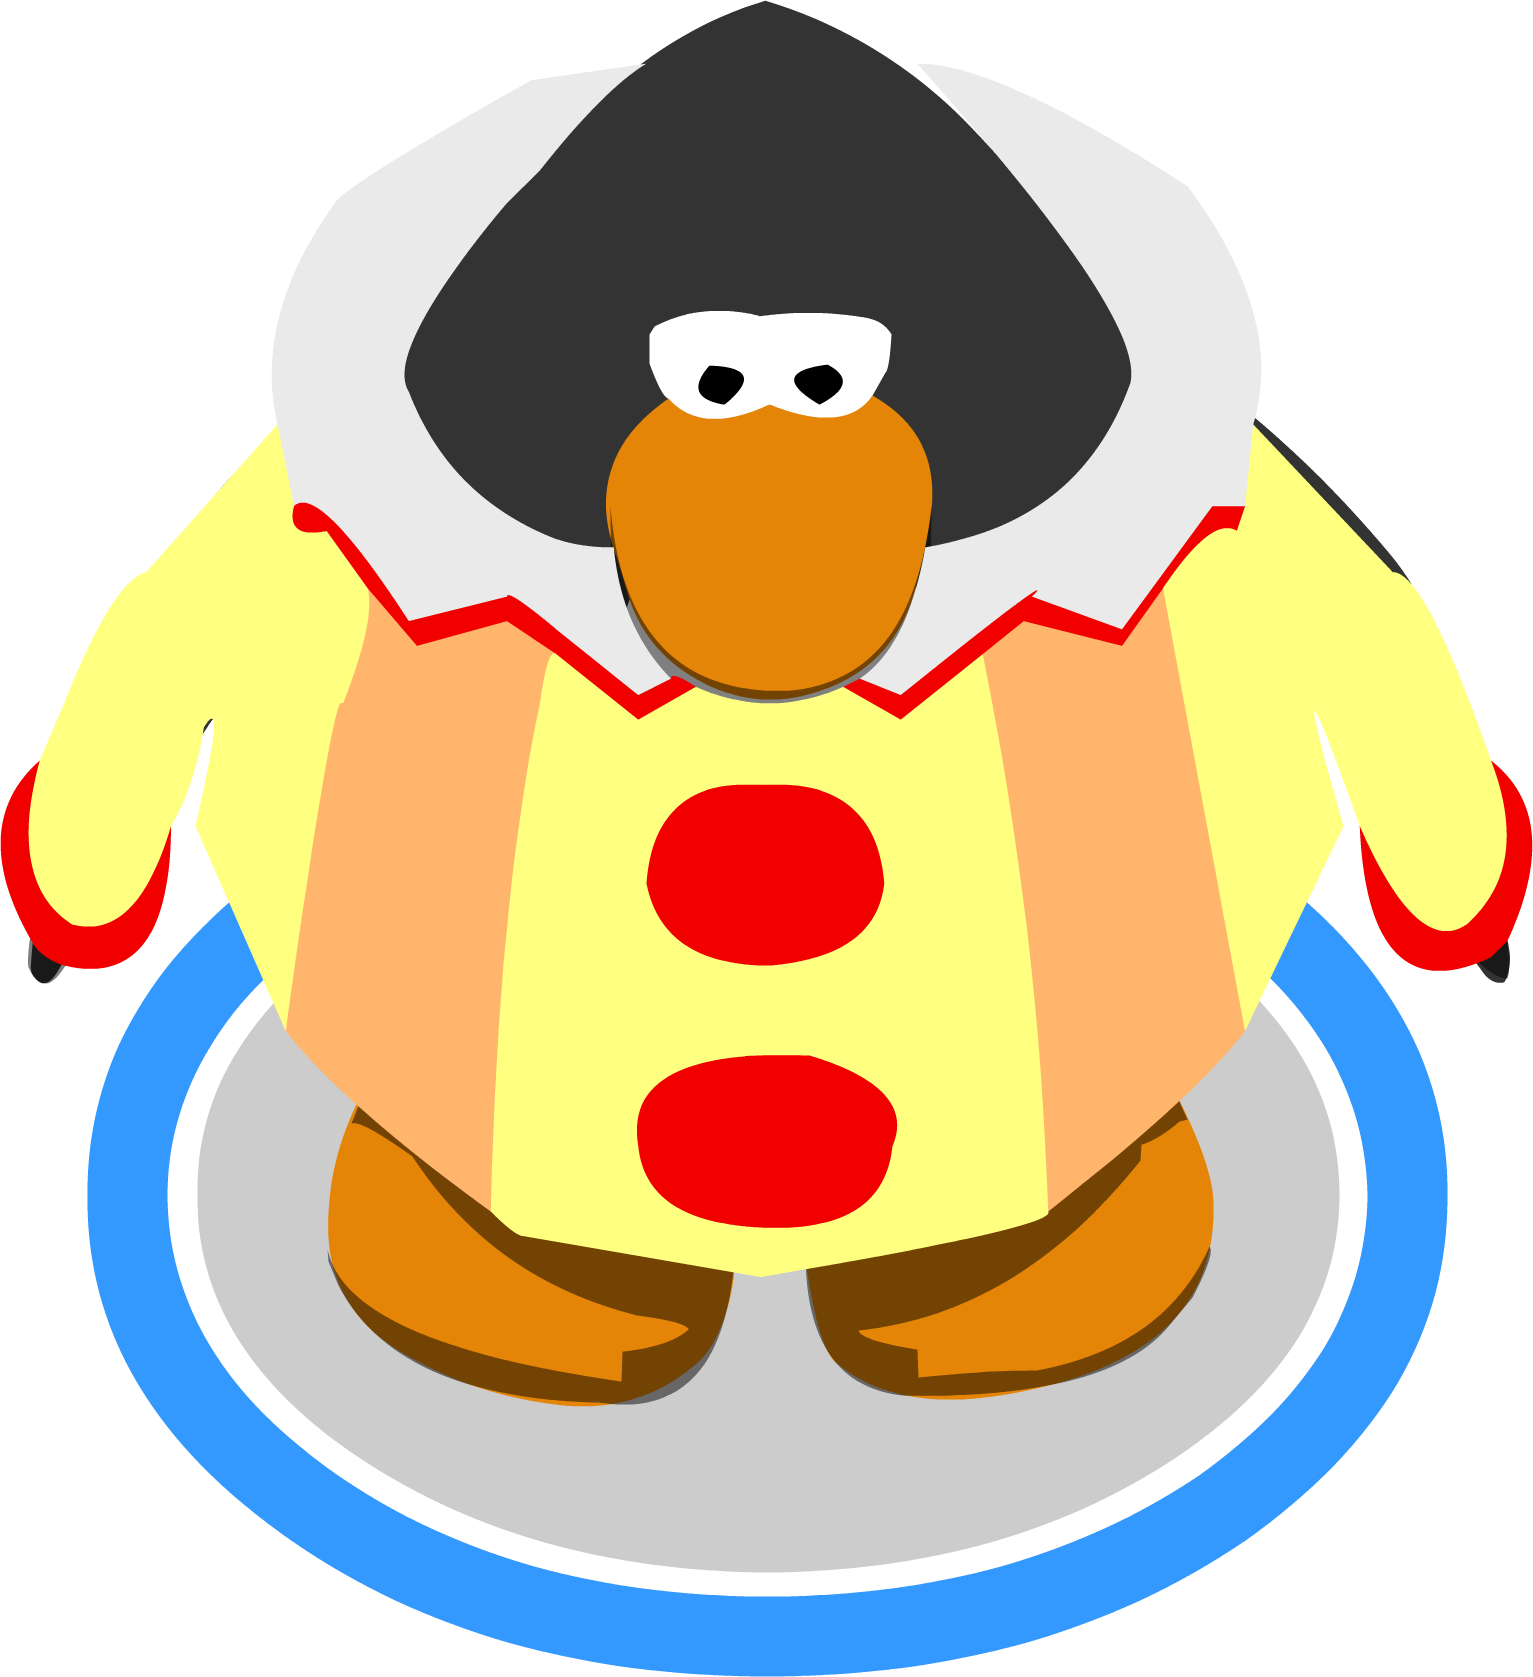 Costume clipart game. Image clown in png